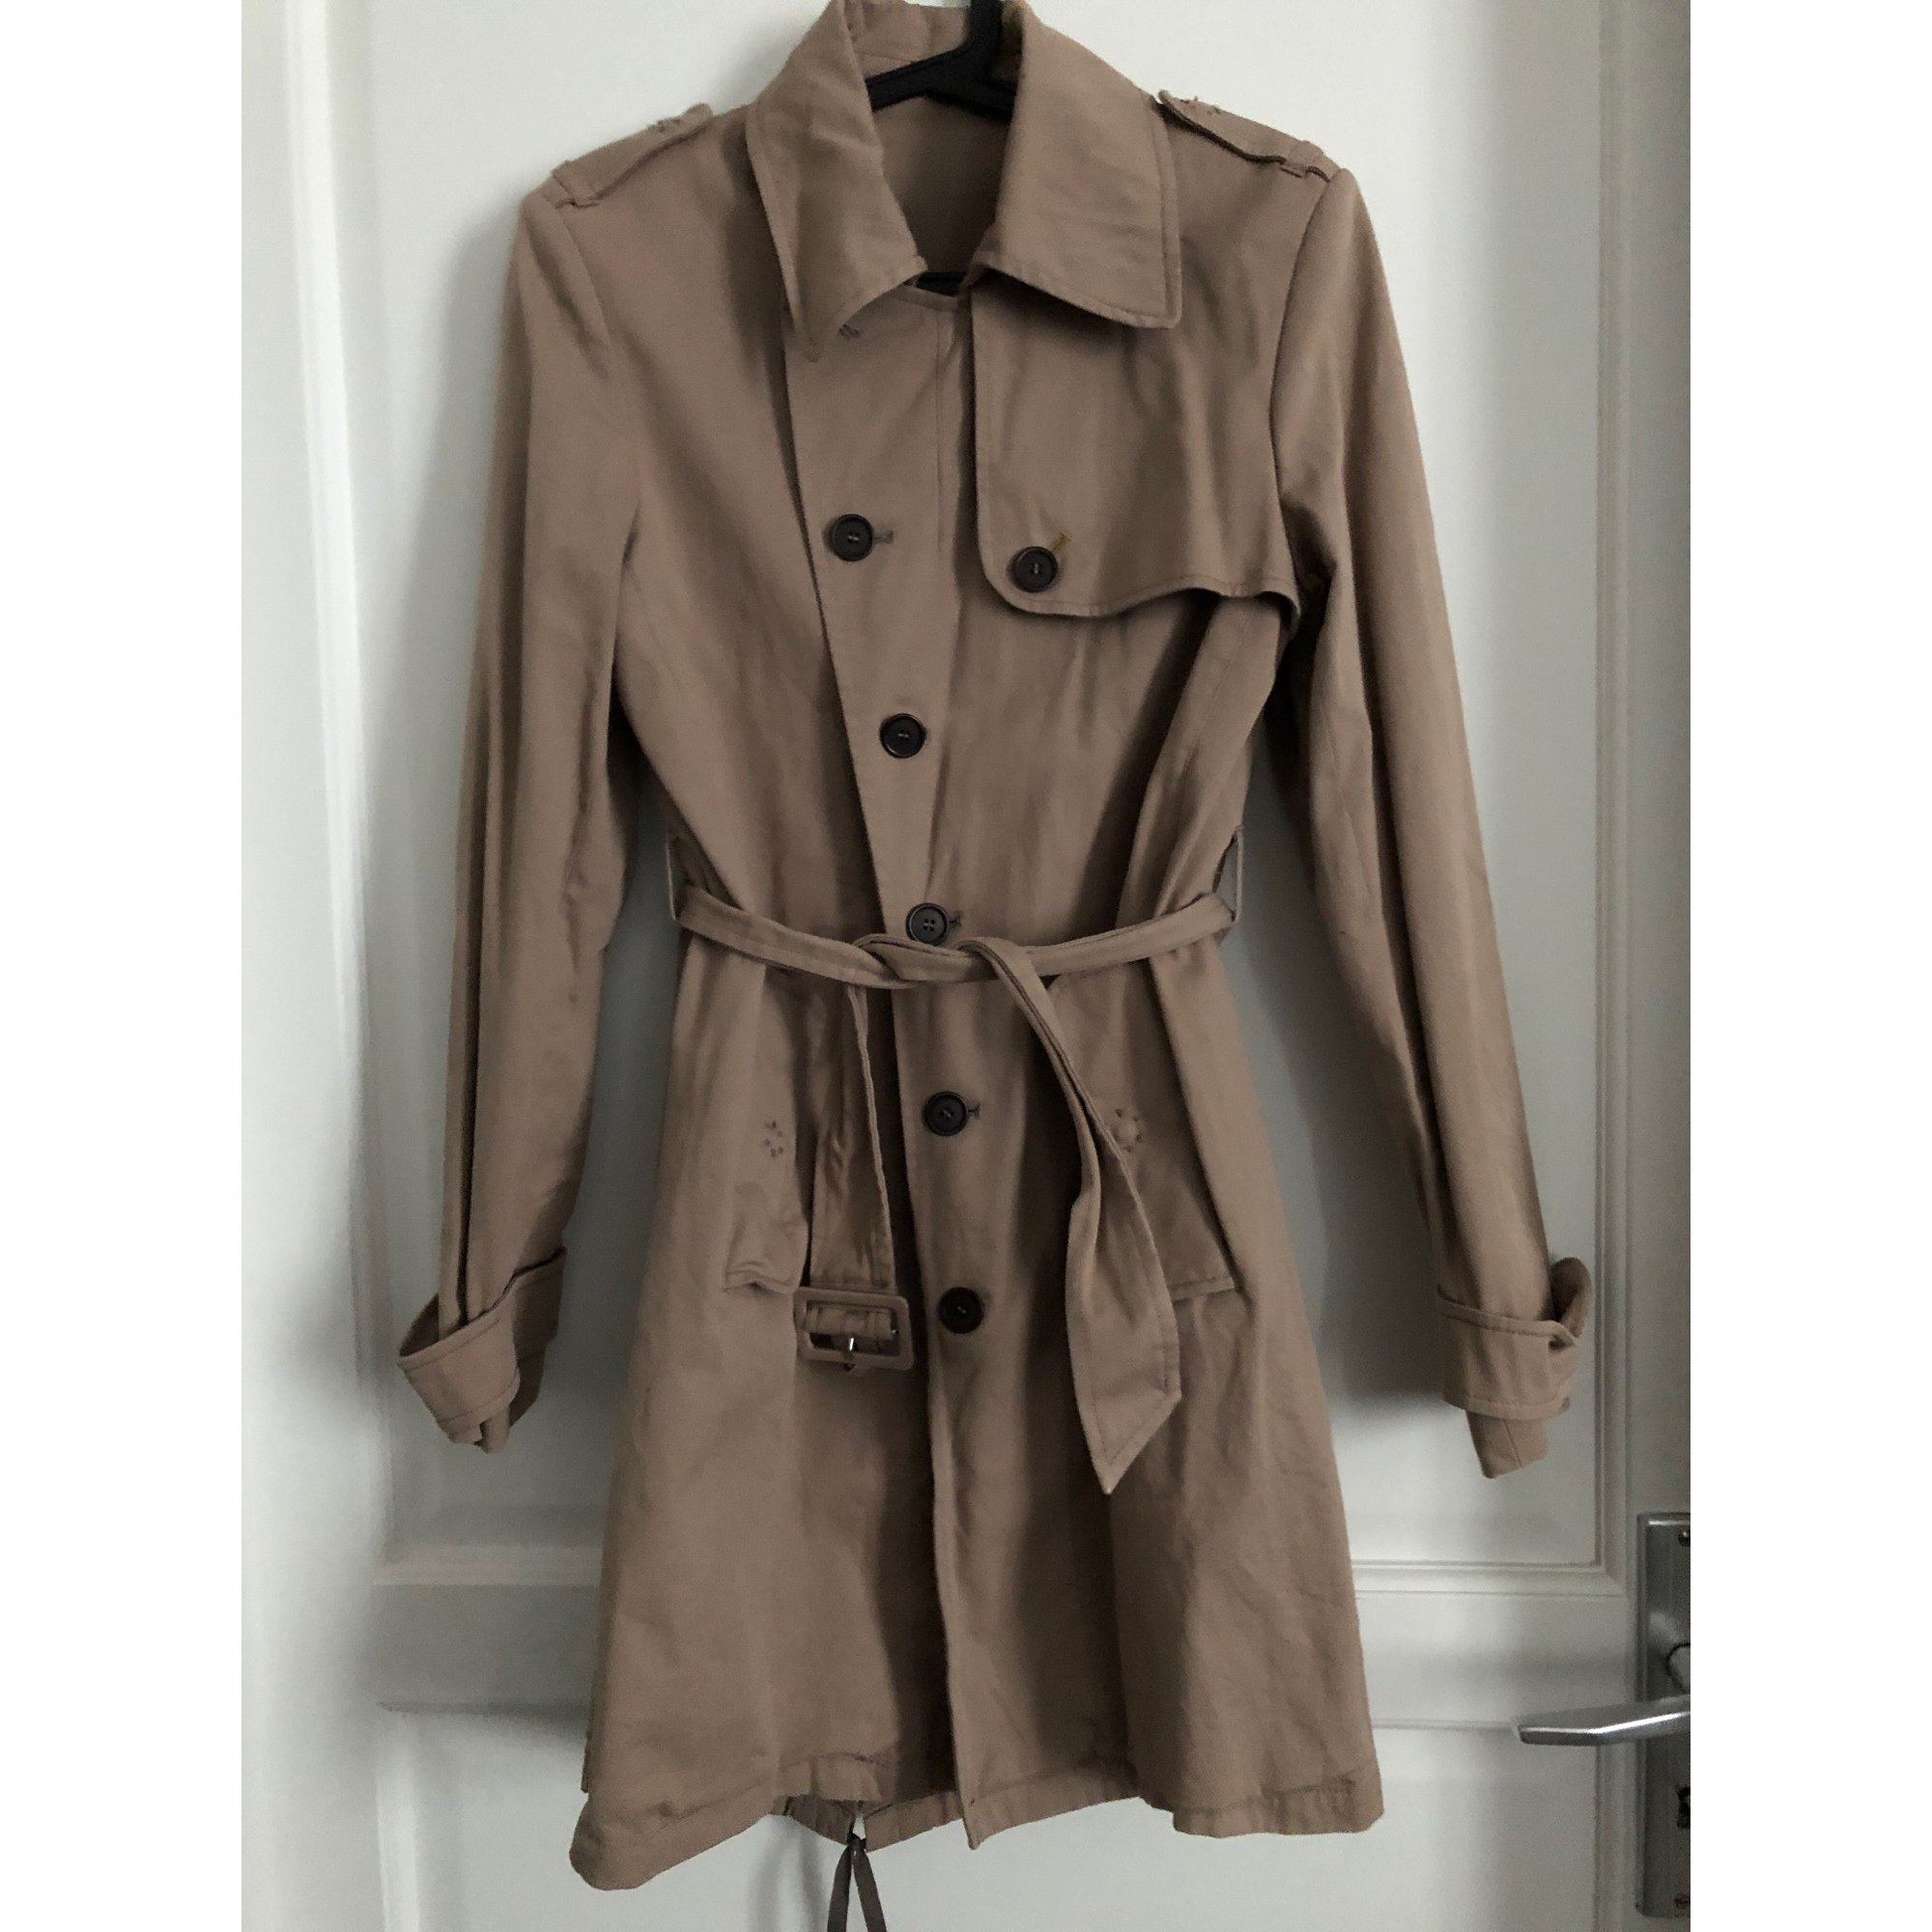 Imperméable, trench CHEMINS BLANCS Beige, camel